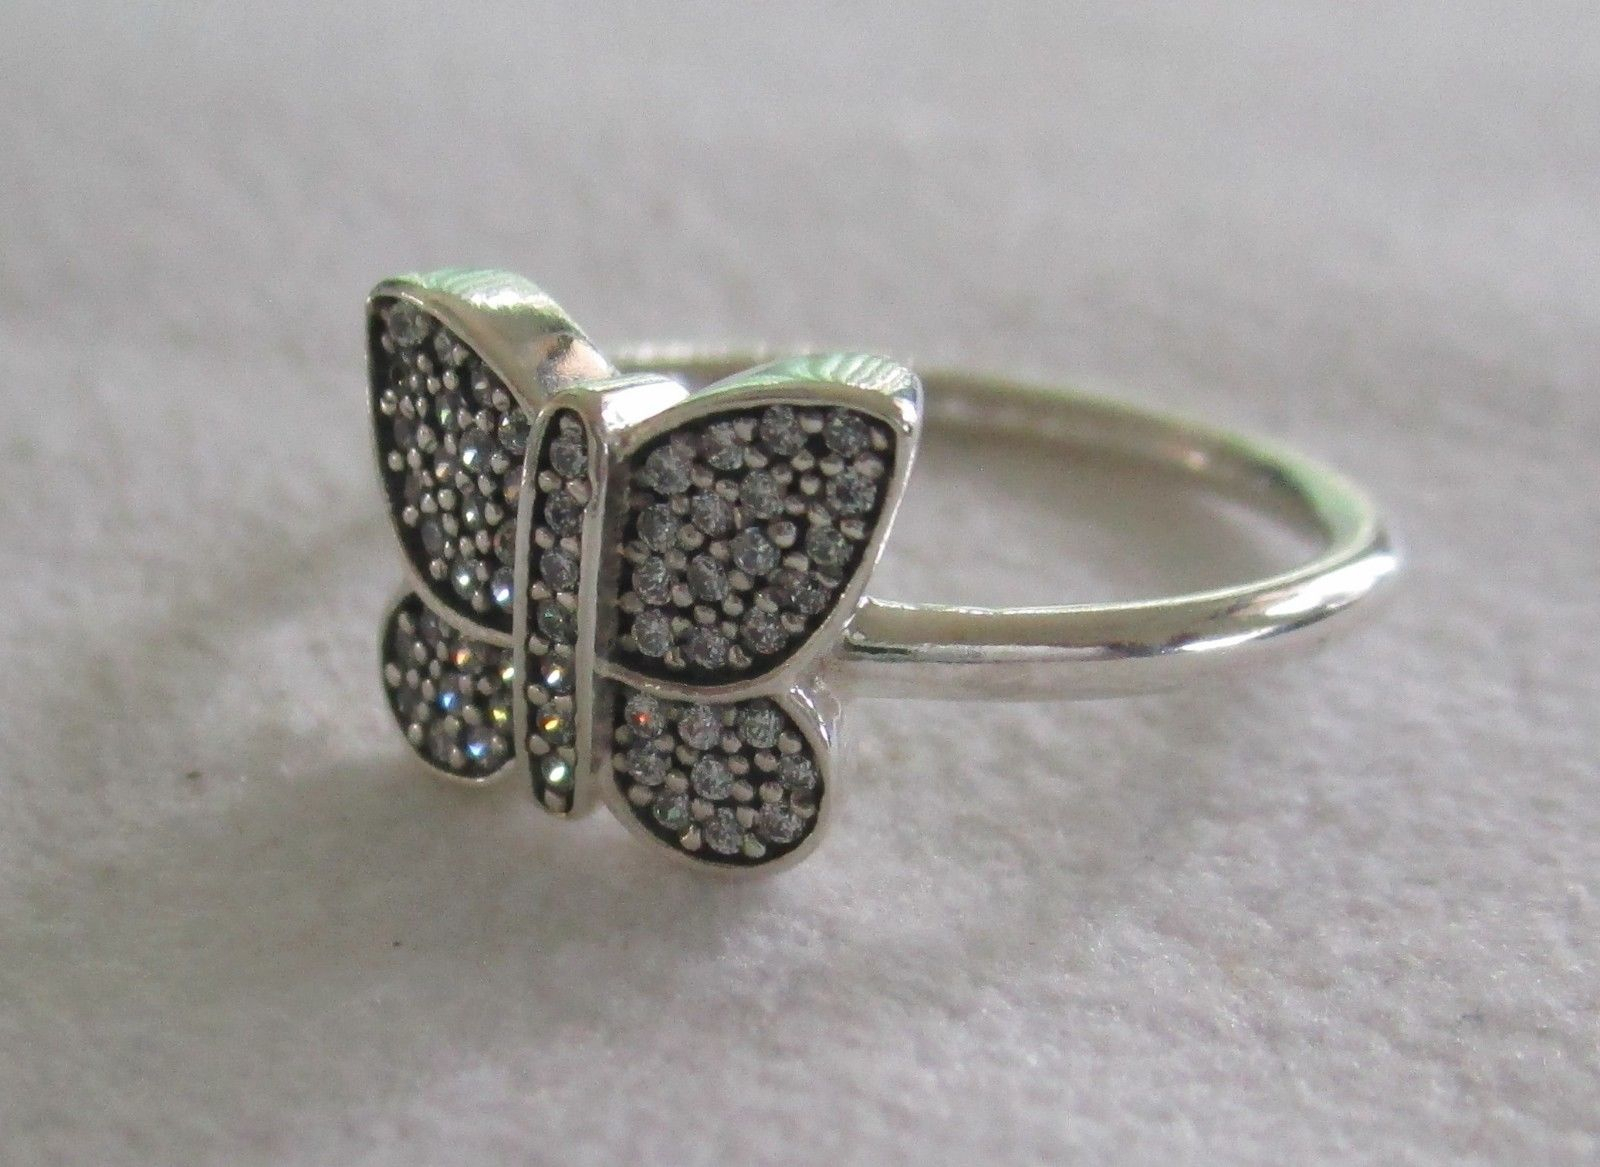 Pandora Sterling Silver Rings – Sparkling Butterfly Ring 190938cz Inside Most Recent Sparkling Butterfly Open Rings (Gallery 14 of 25)